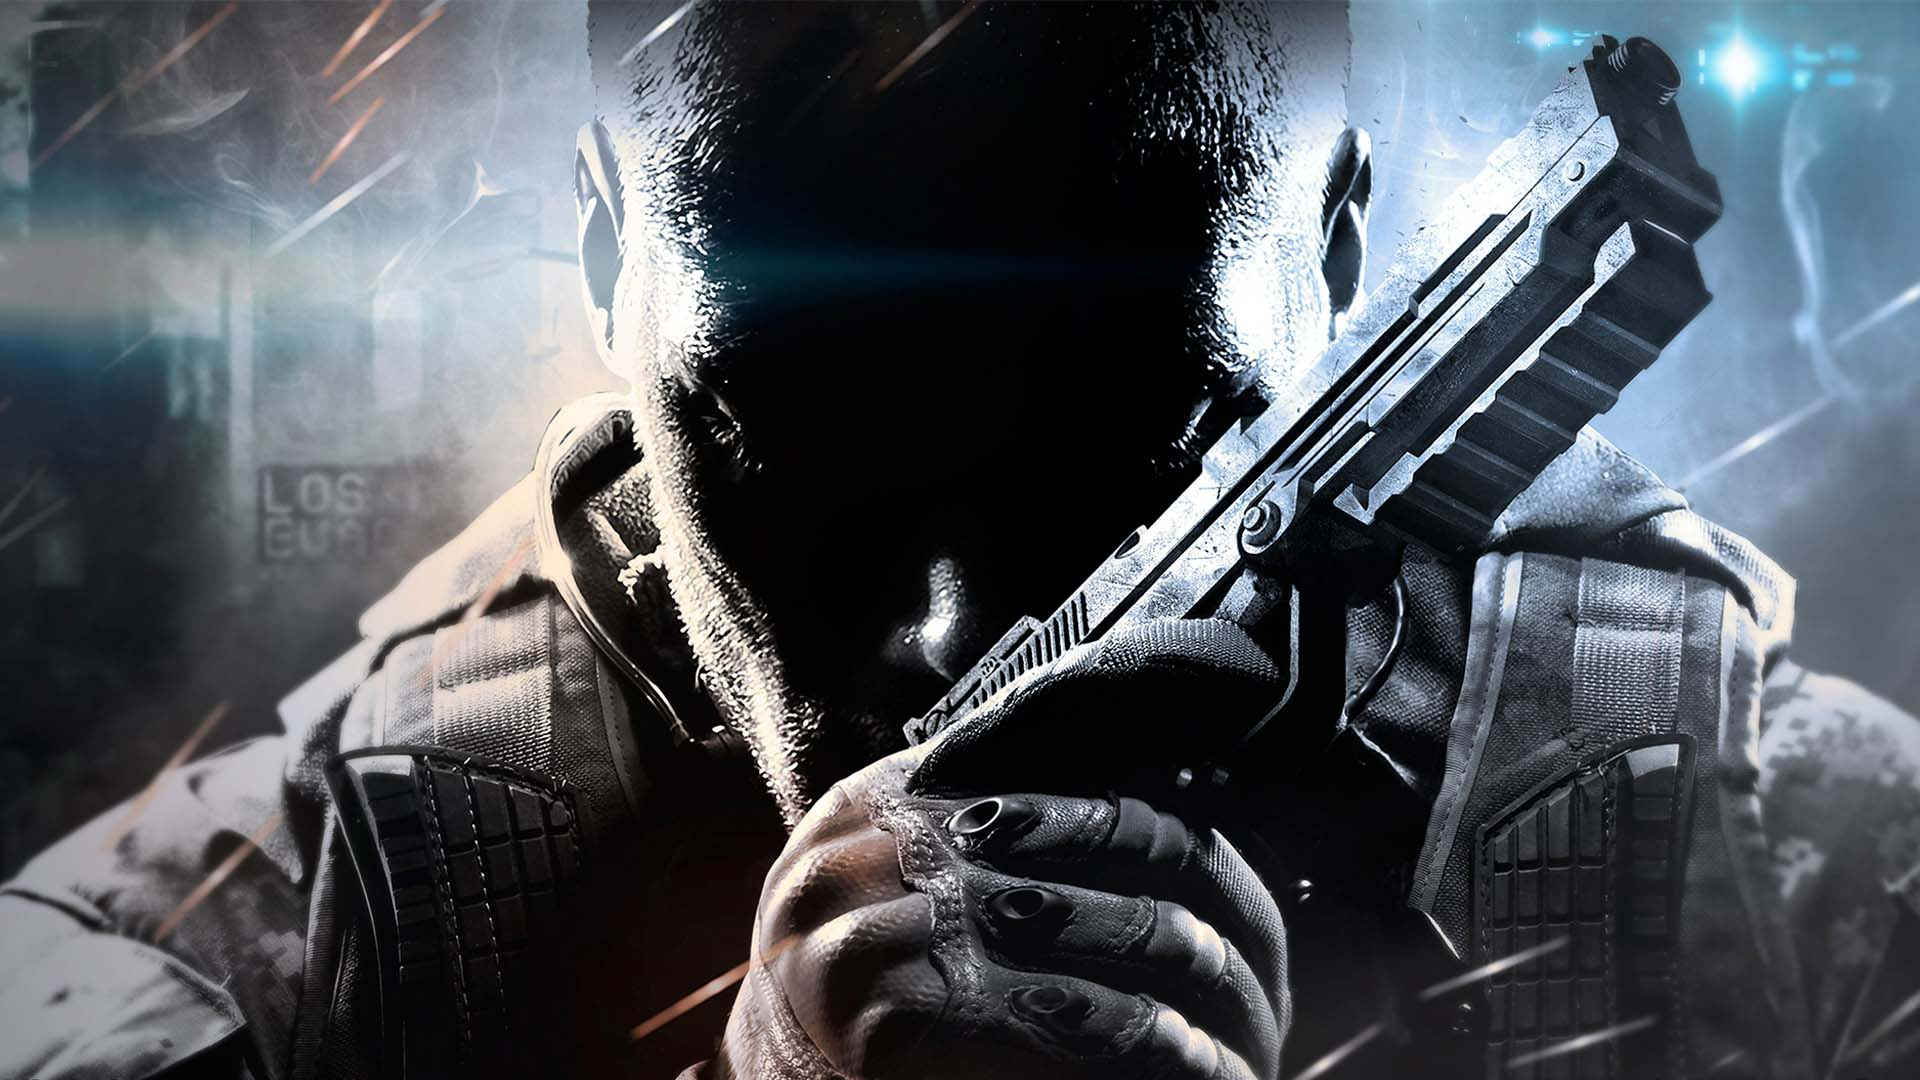 Call Of Duty Full HD Game Wallpaper #9 | TopGa #776 HD Game ...